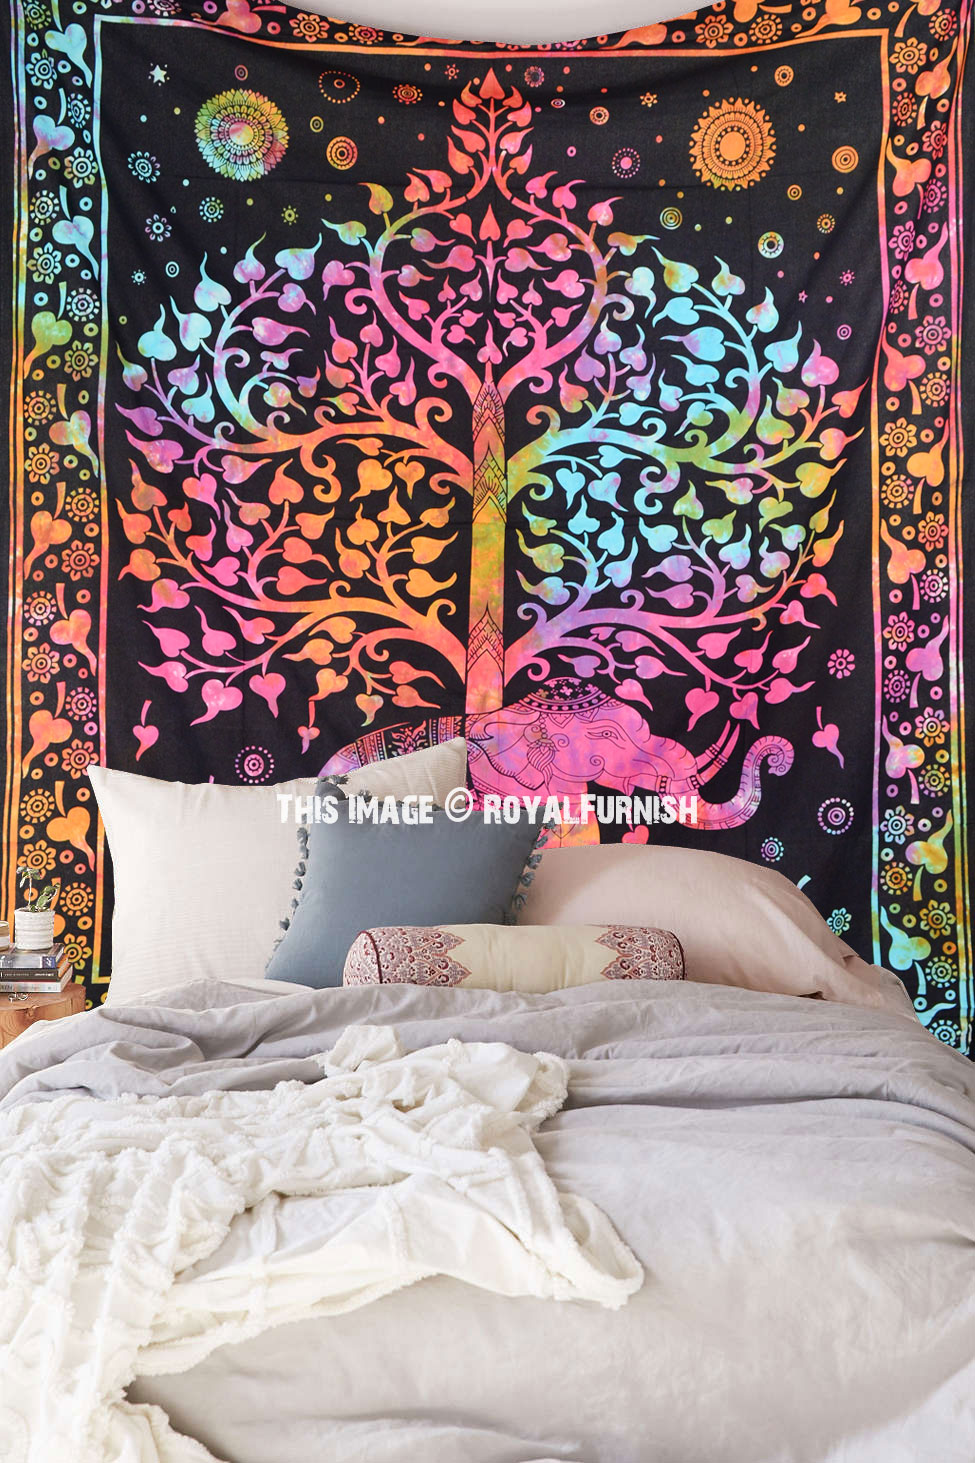 Tie Dye Colorful Elephant Tree Tapestry Wall Hanging Bedspread Bedding. Tie Dye Colorful Elephant Tree Tapestry Wall Hanging Bedspread